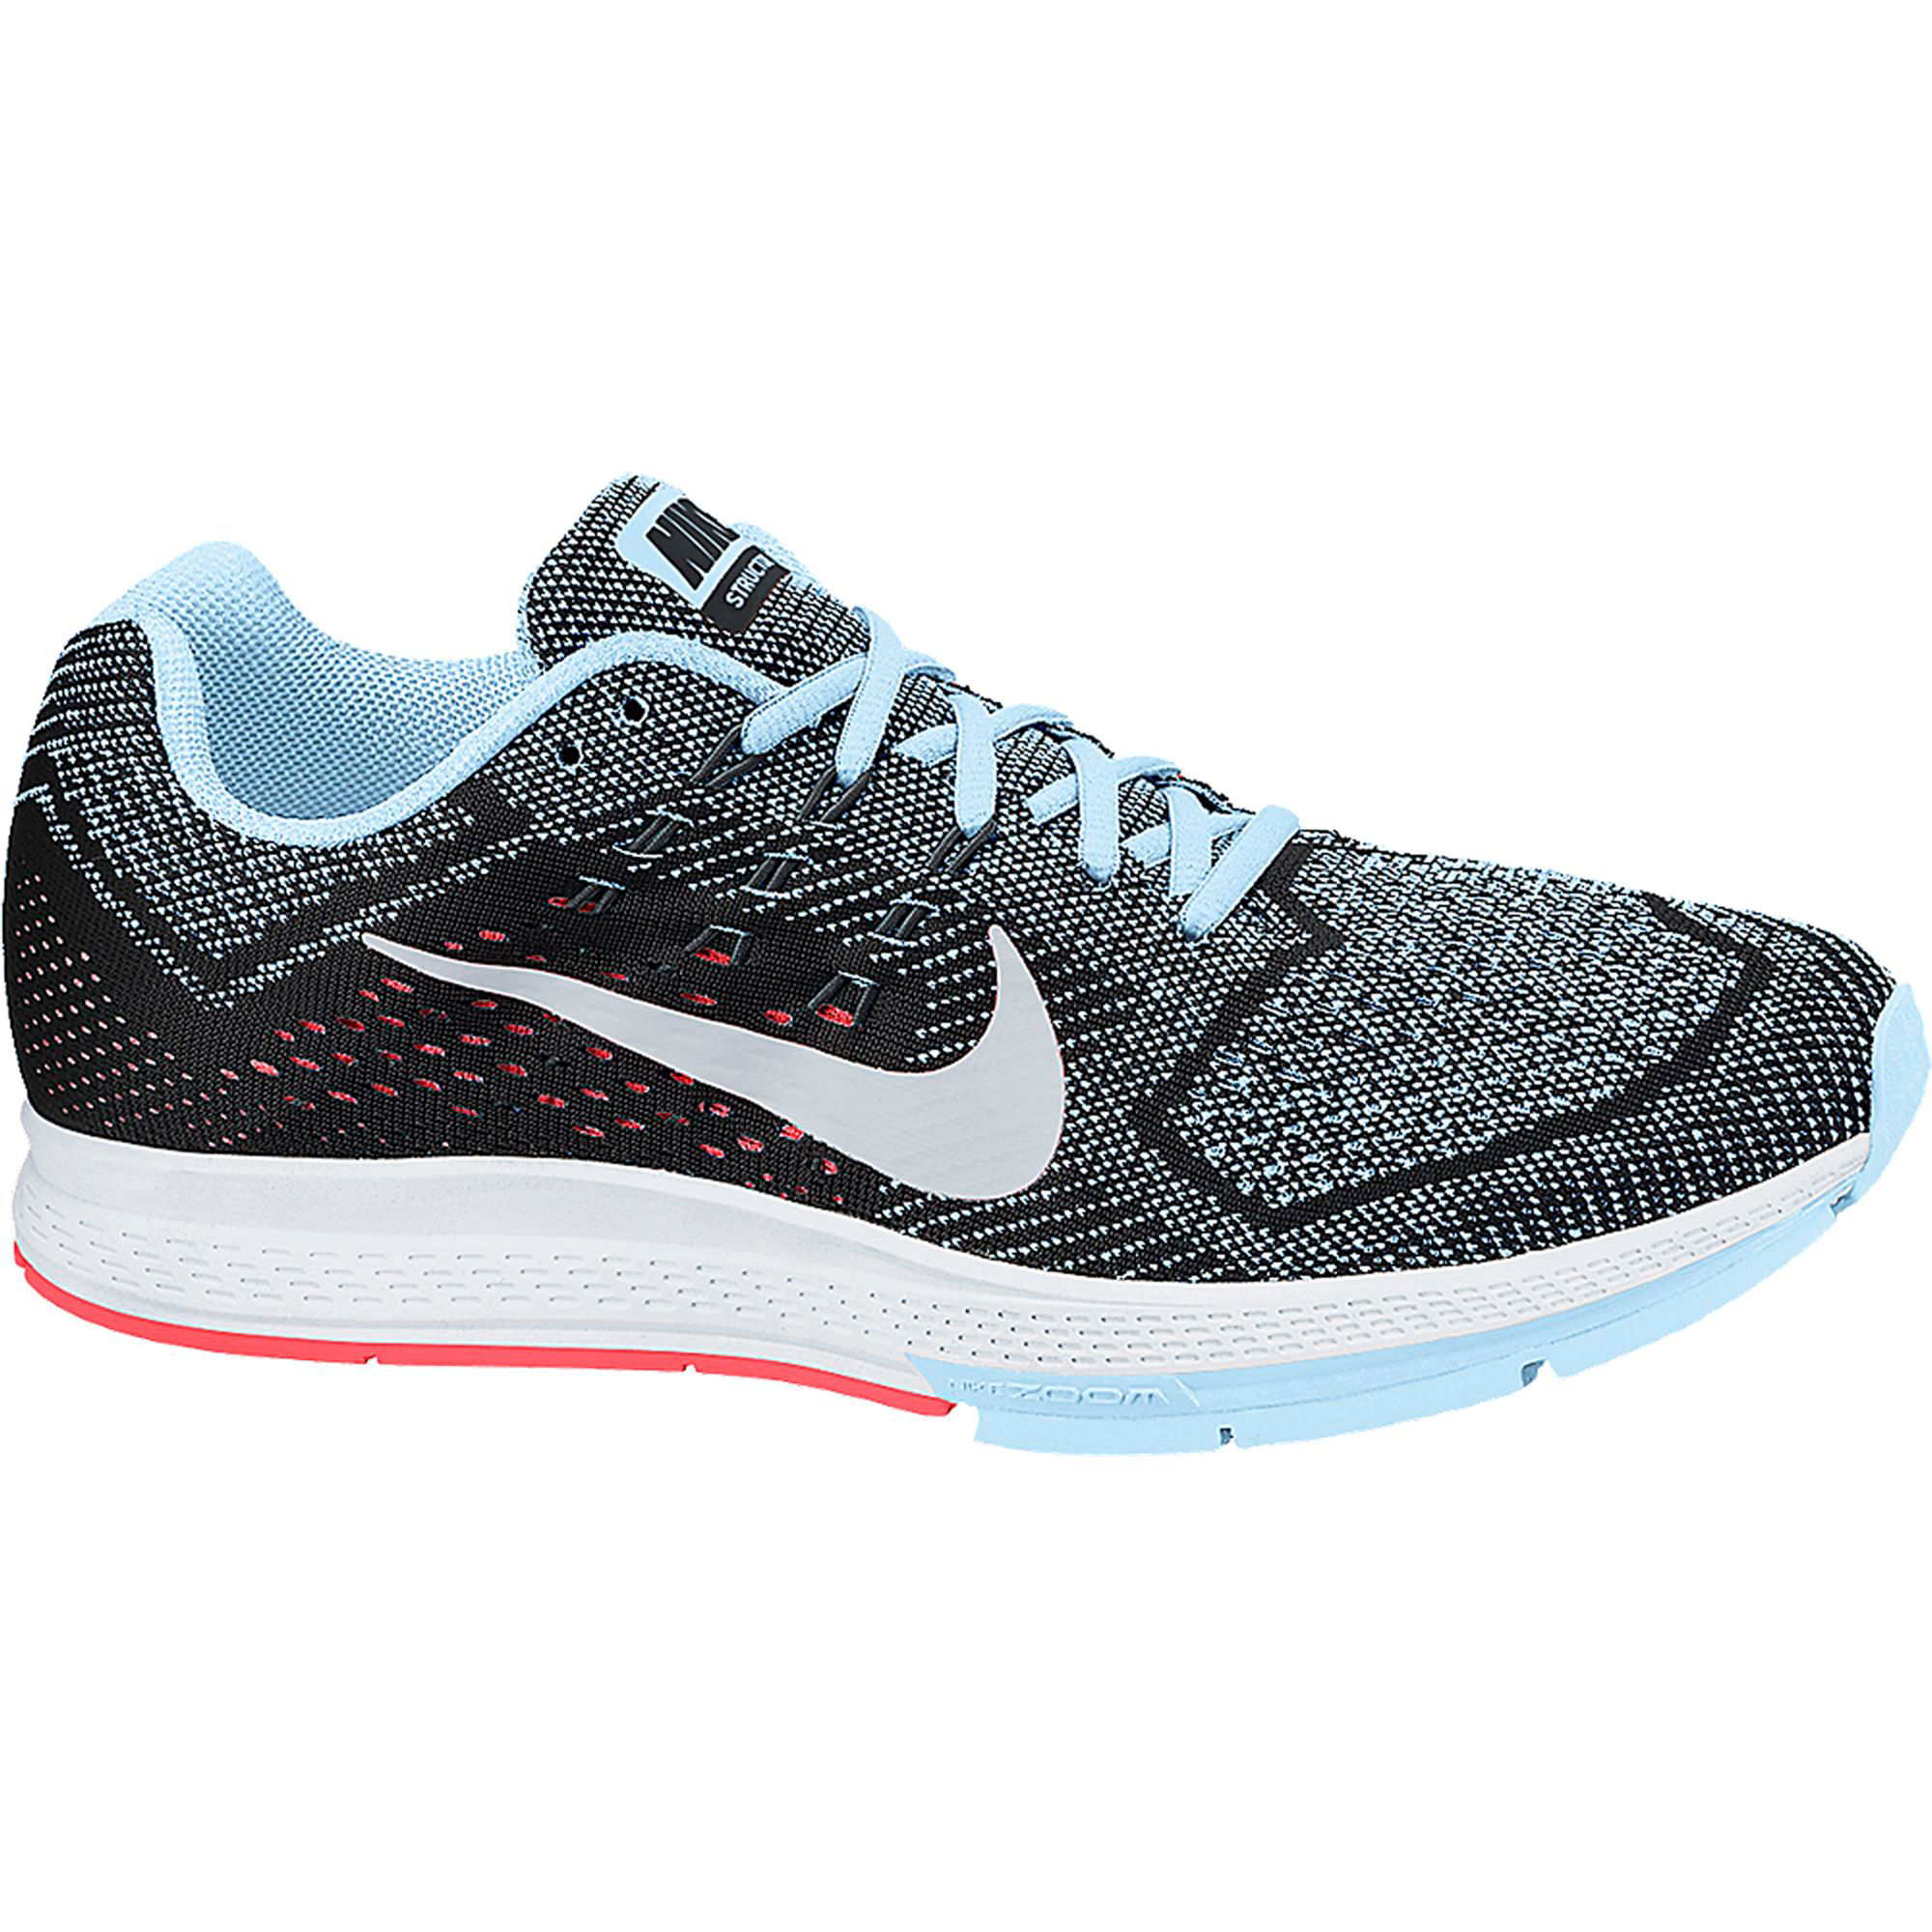 size 40 d7d60 1eeb9 Wiggle Cycle To Work | Nike Women's Air Zoom Structure 18 ...